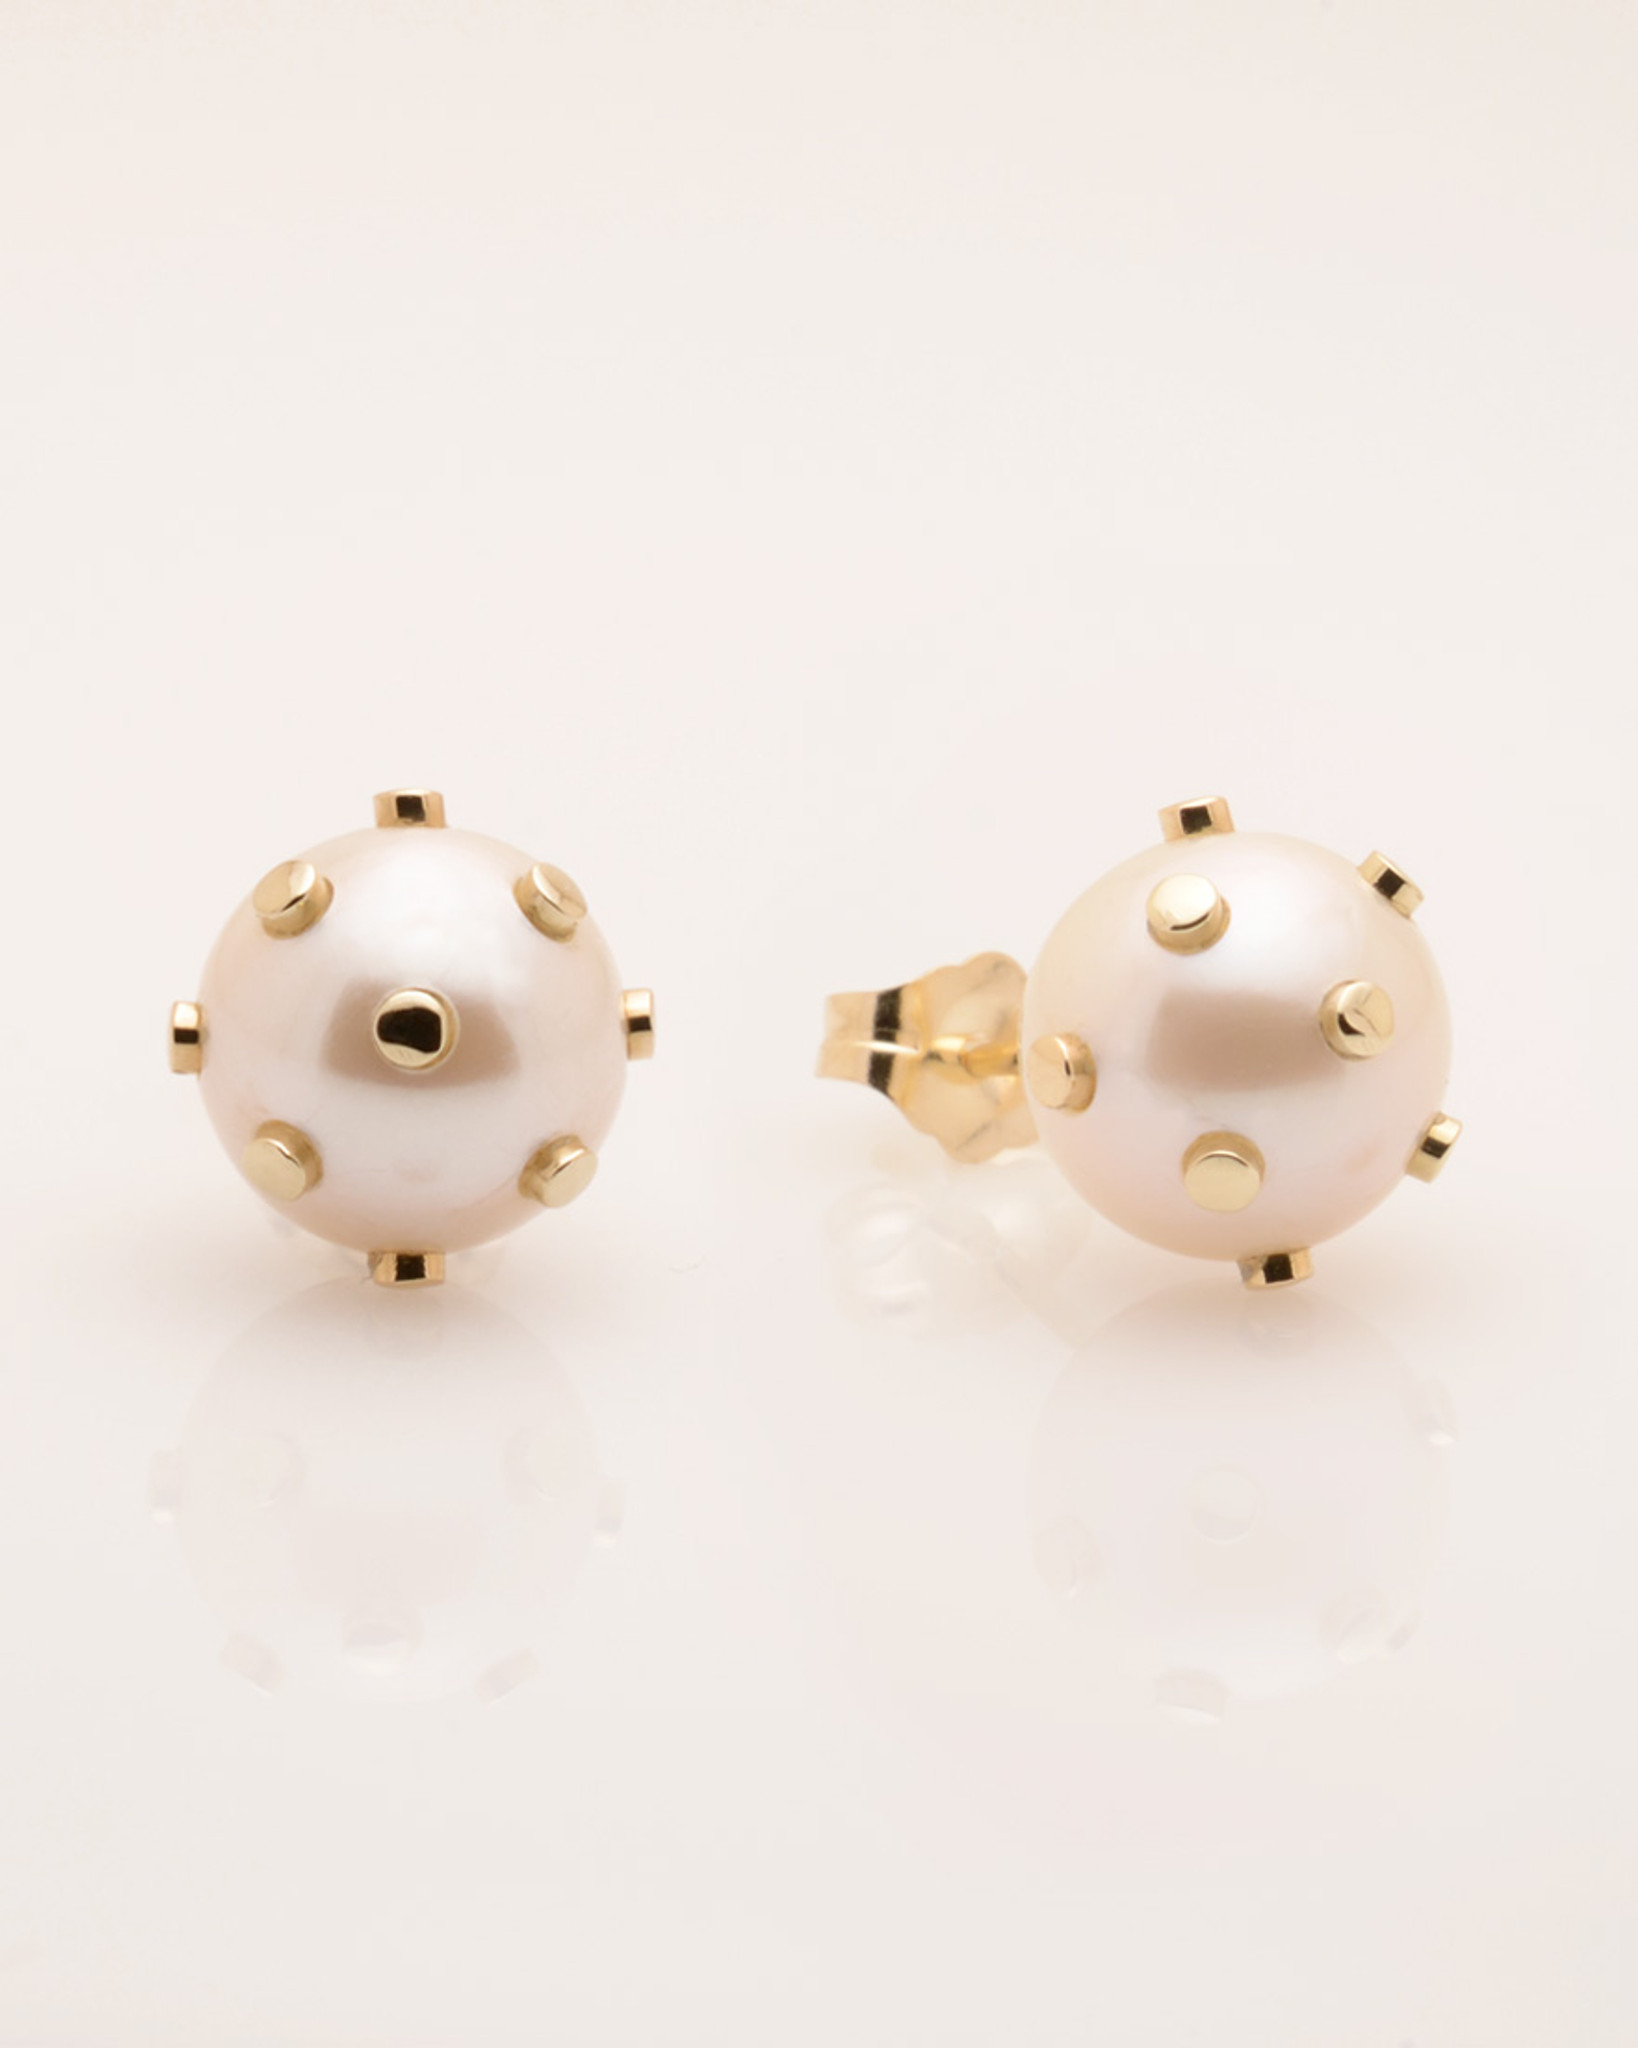 Cultured Freshwater Pearl Earrings with 14k Gold Dots & Post by Jewelry Designer Nektar De Stagni (8-9mm)